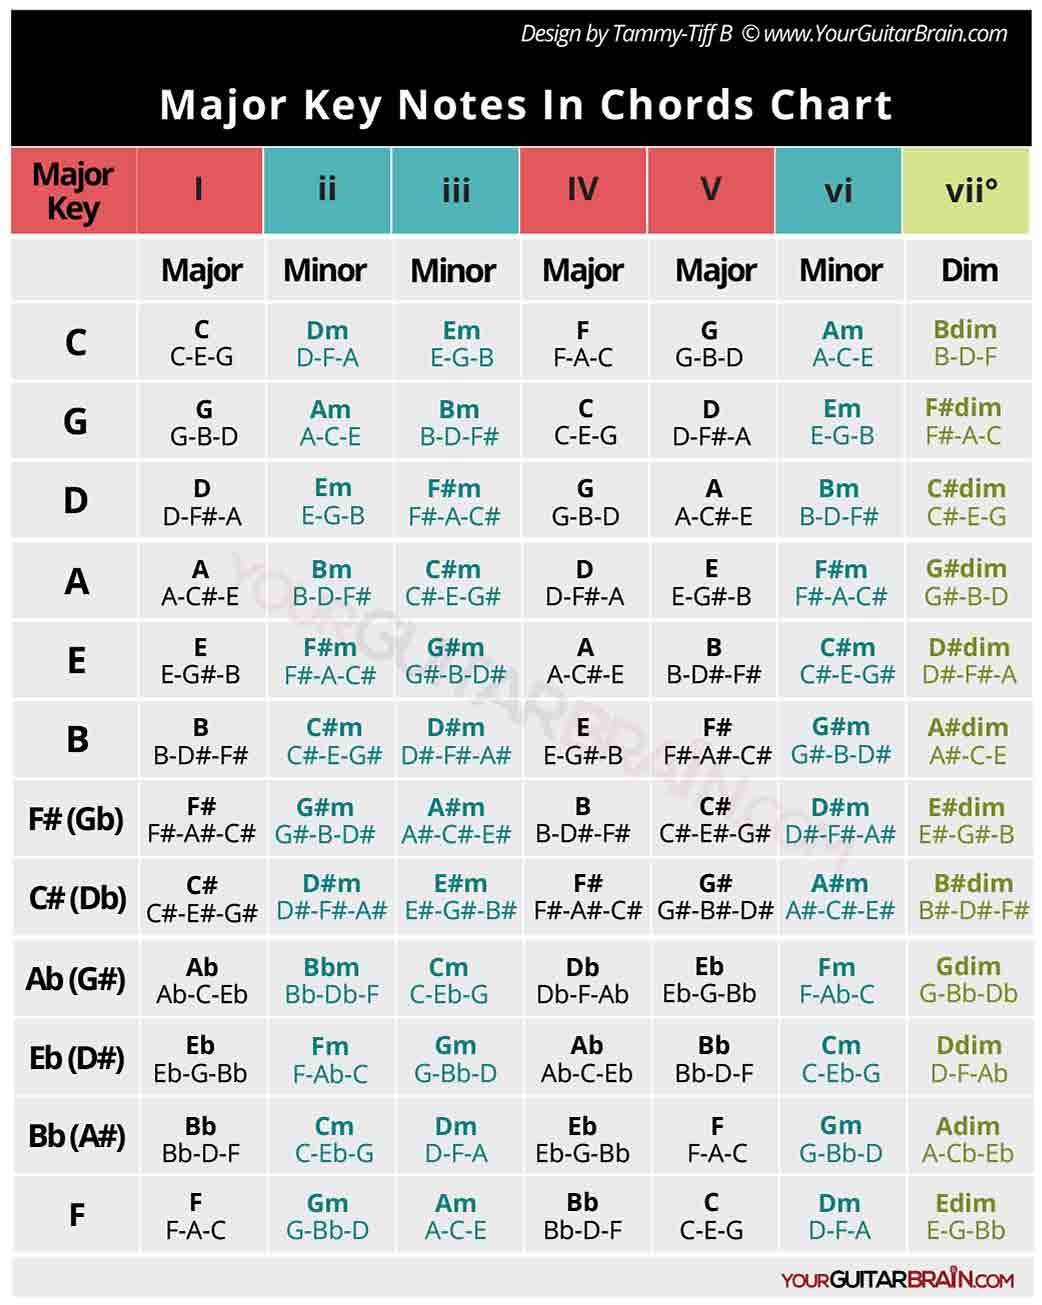 major key notes in chords chart table